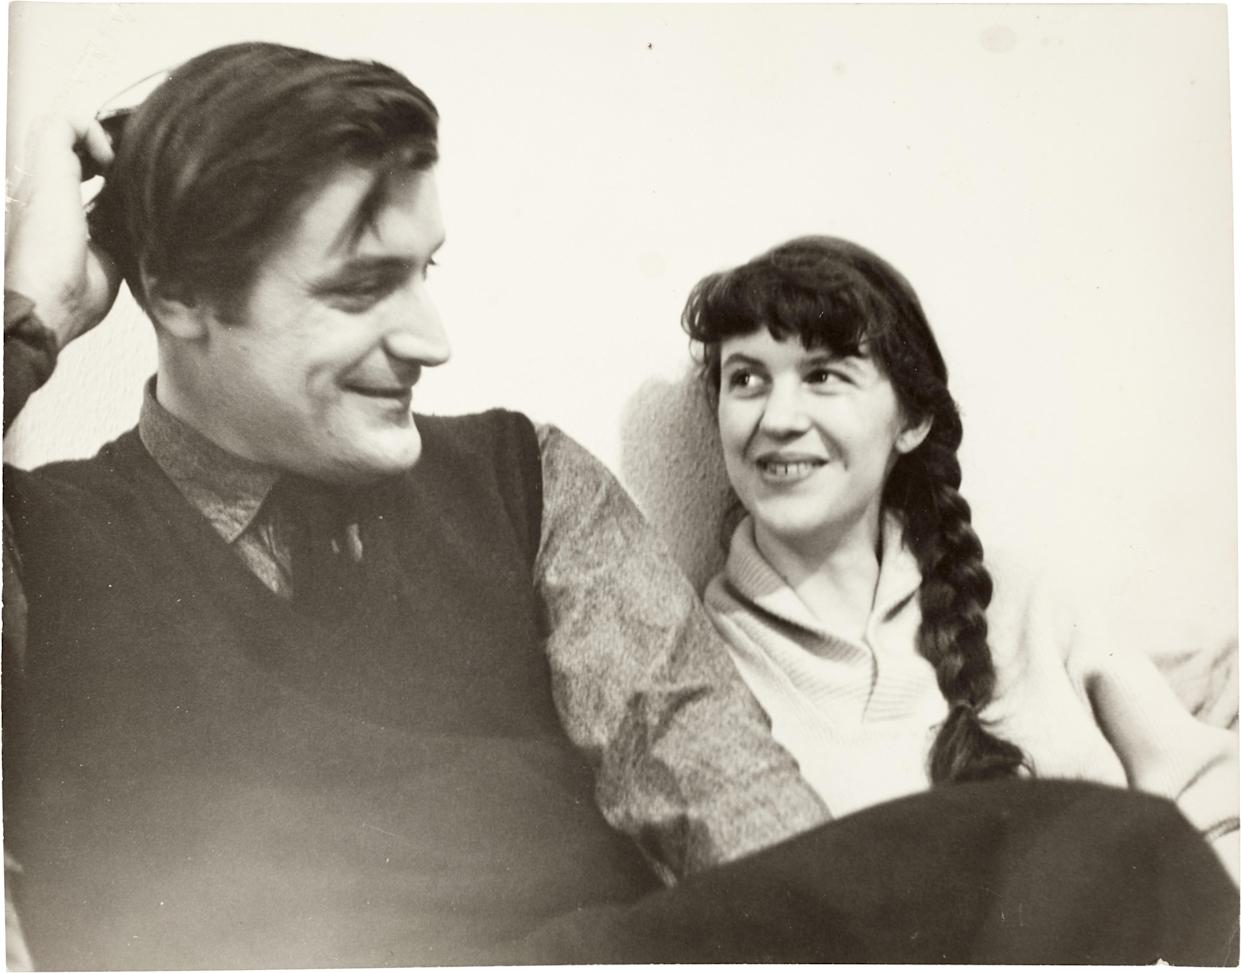 Photograph of Ted Hughes and Sylvia Plath